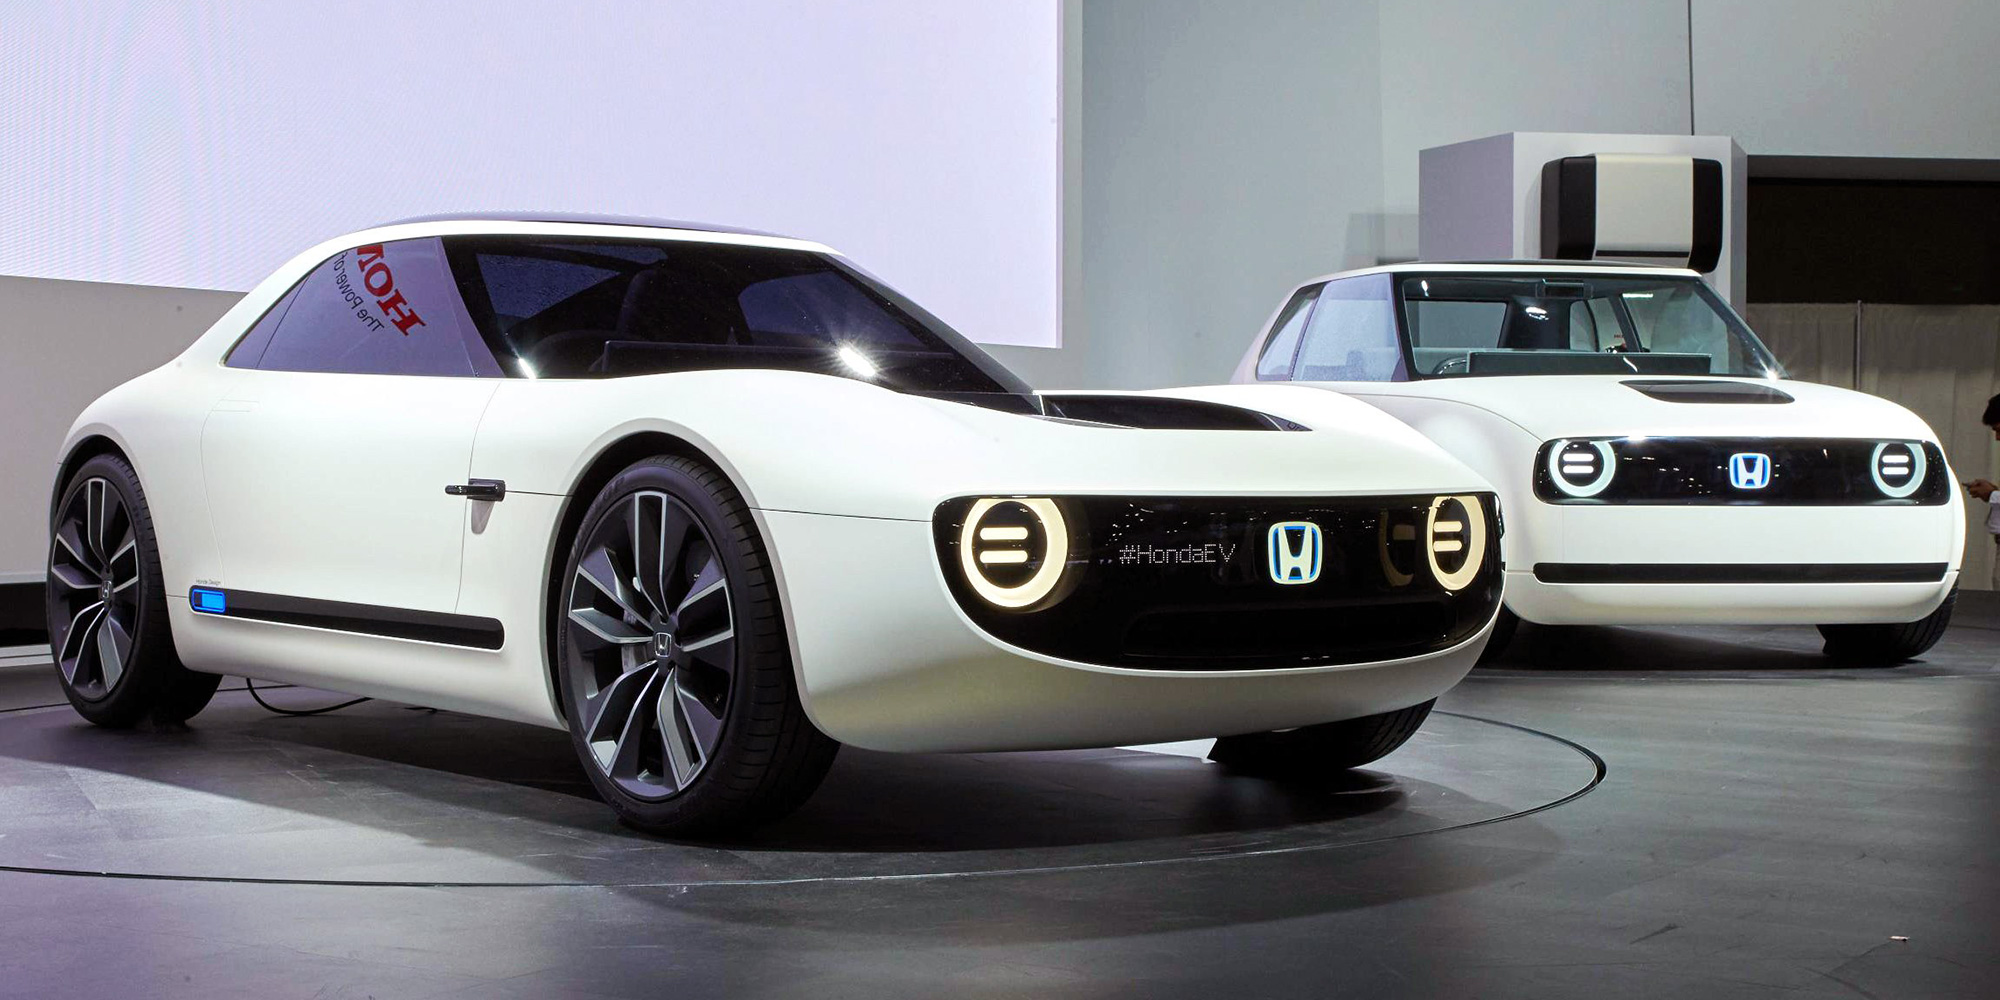 Small, cool, electric Hondas